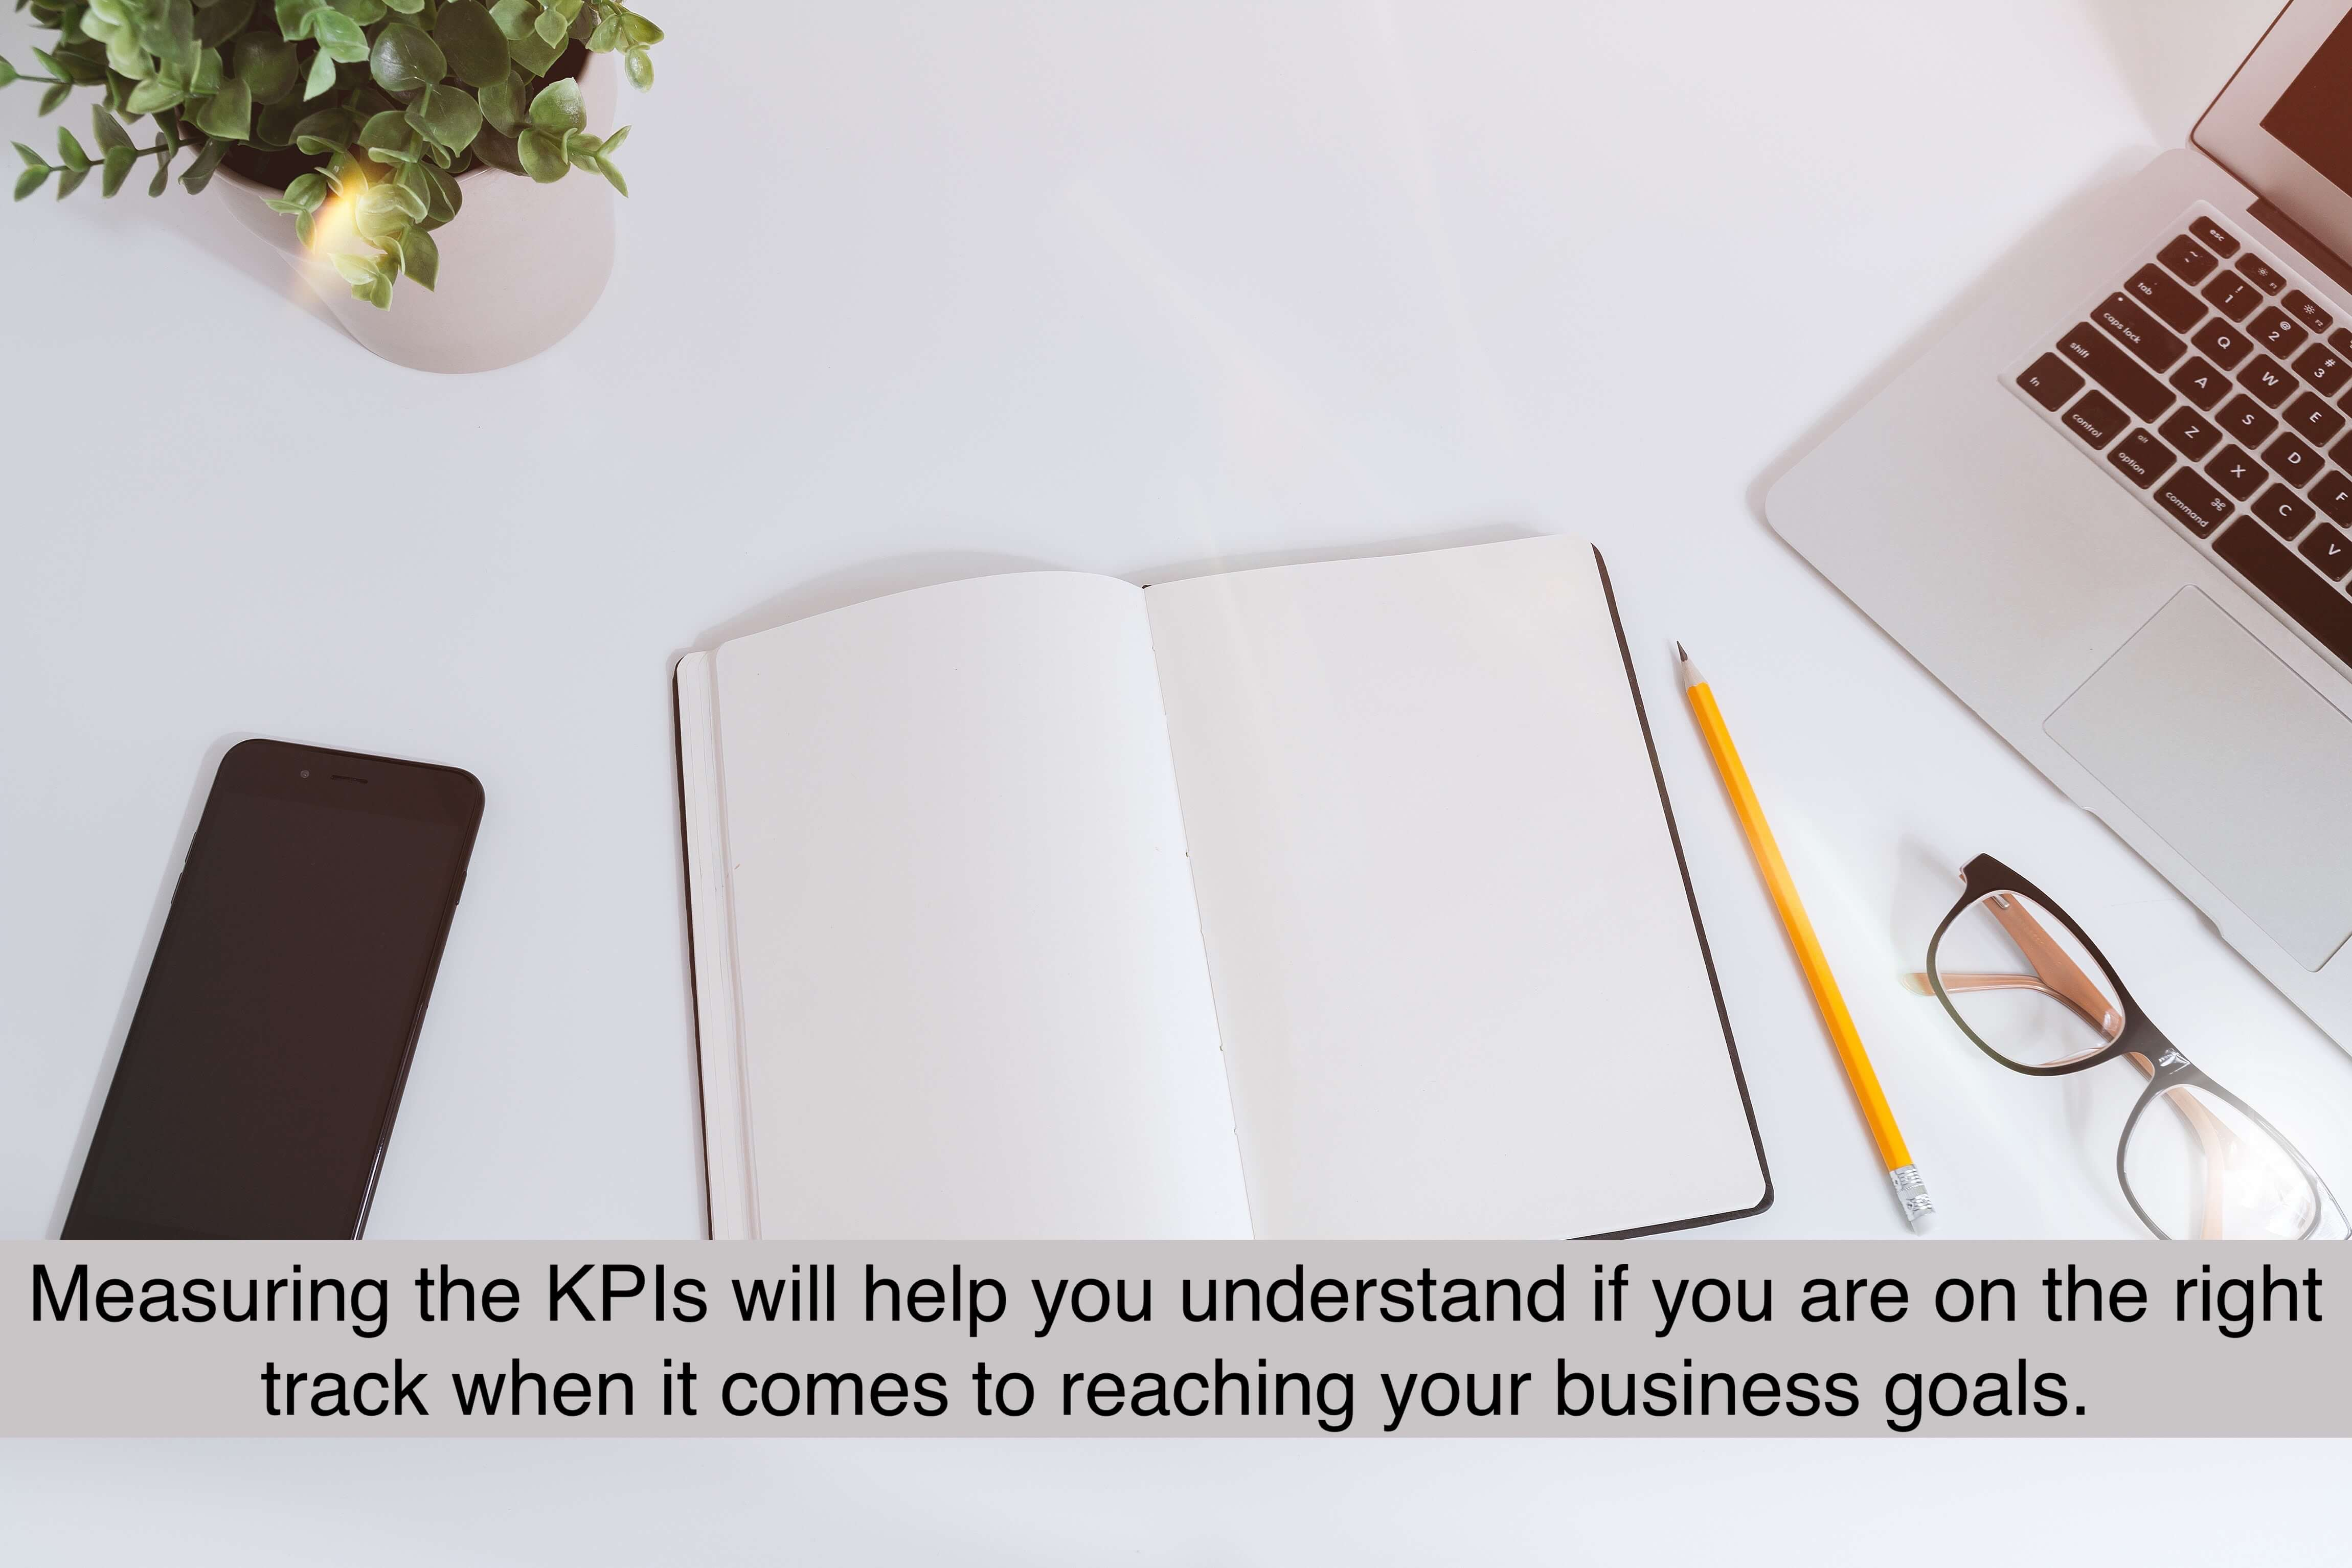 Measuring the KPIs will help you understand if you are on the right track when it comes to reaching your business goals.